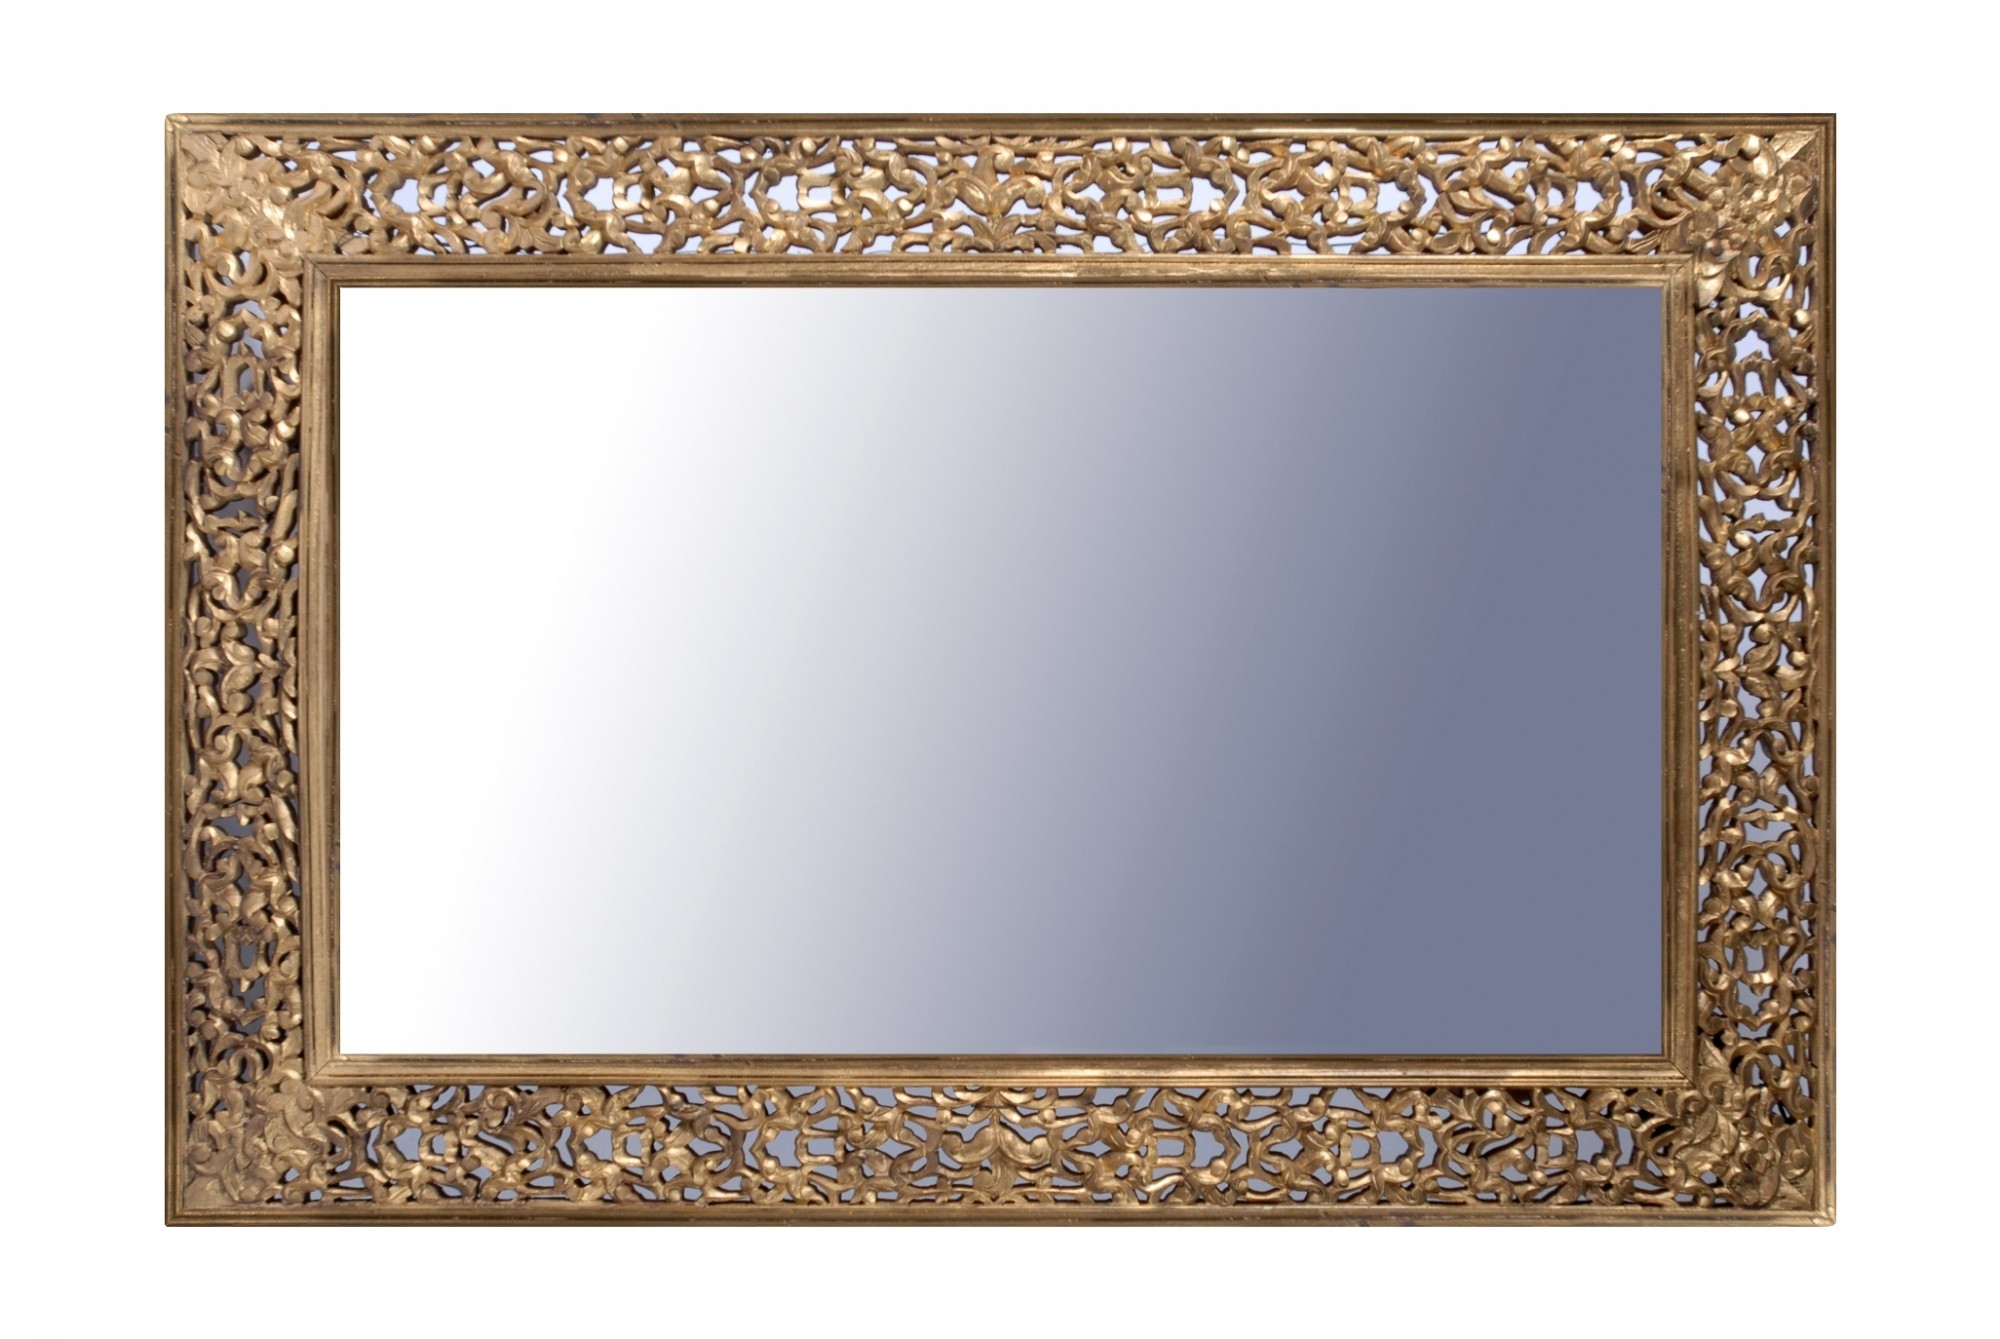 Home Decor Fascinating Antique Mirror Images Design Inspirations Regarding Gold Antique Mirrors (Photo 1 of 15)